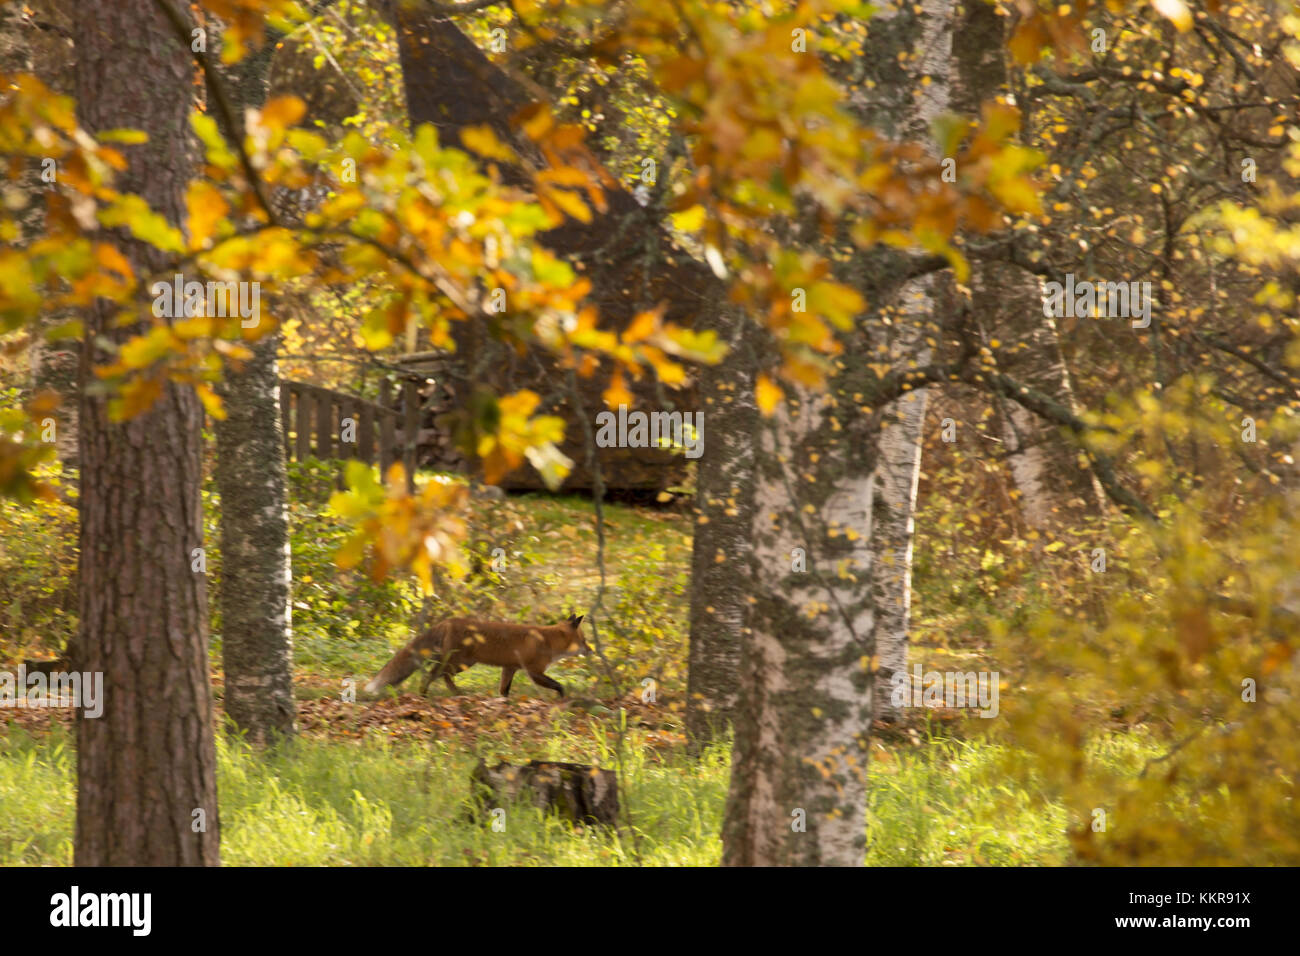 Red Fox, vulpes vulpes, Adult walking in autumnal garden, Finland Stock Photo